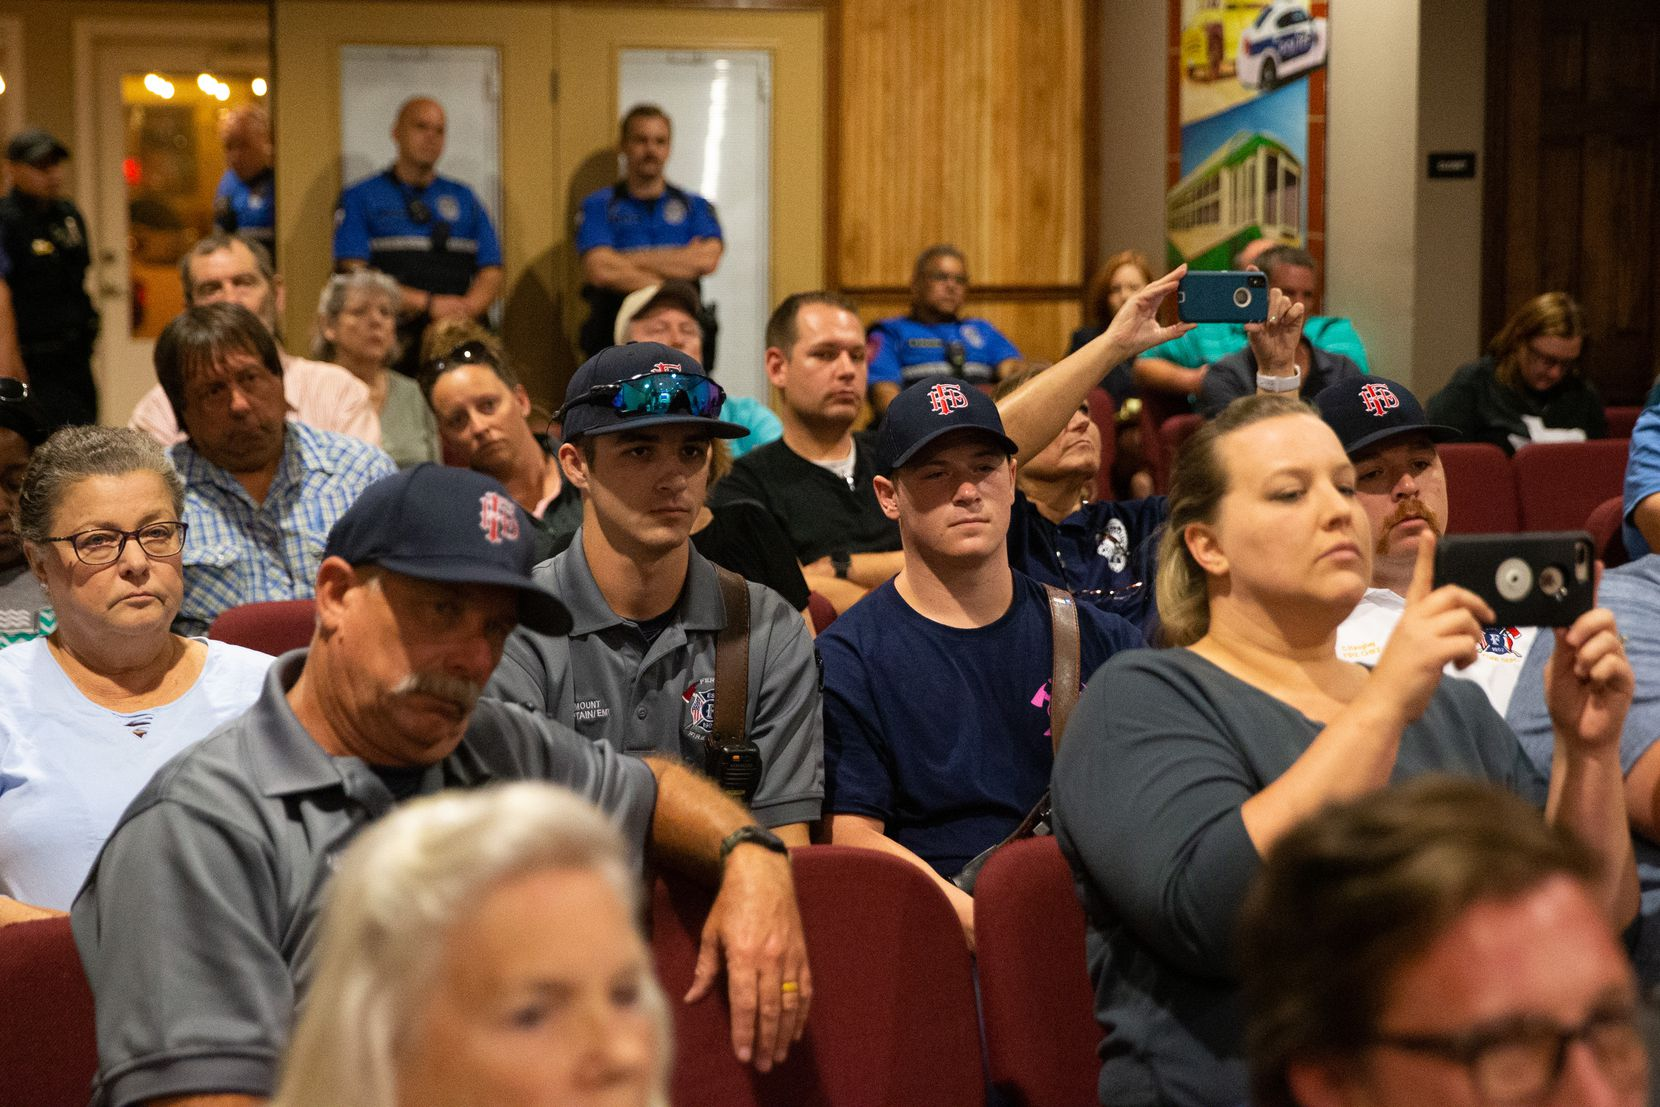 Attendees anticipated an announcement from council members during the council meeting in Ferris on Oct. 7, 2019.  (Lynda M. Gonzalez/The Dallas Morning News)